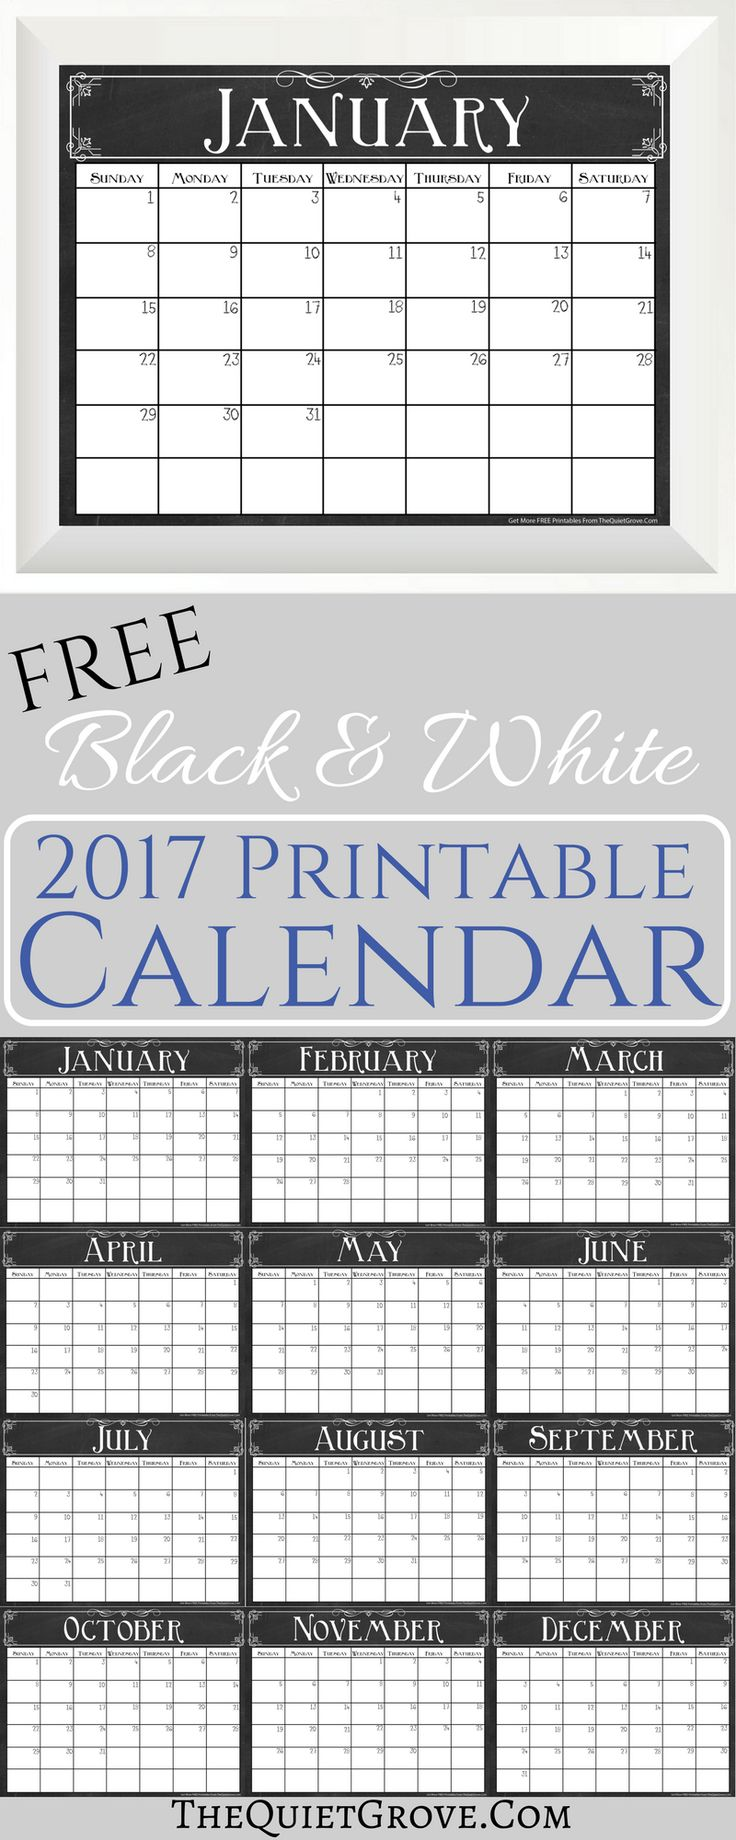 Calendar Planner Printable Sia : Ideas about printable calendars on pinterest free